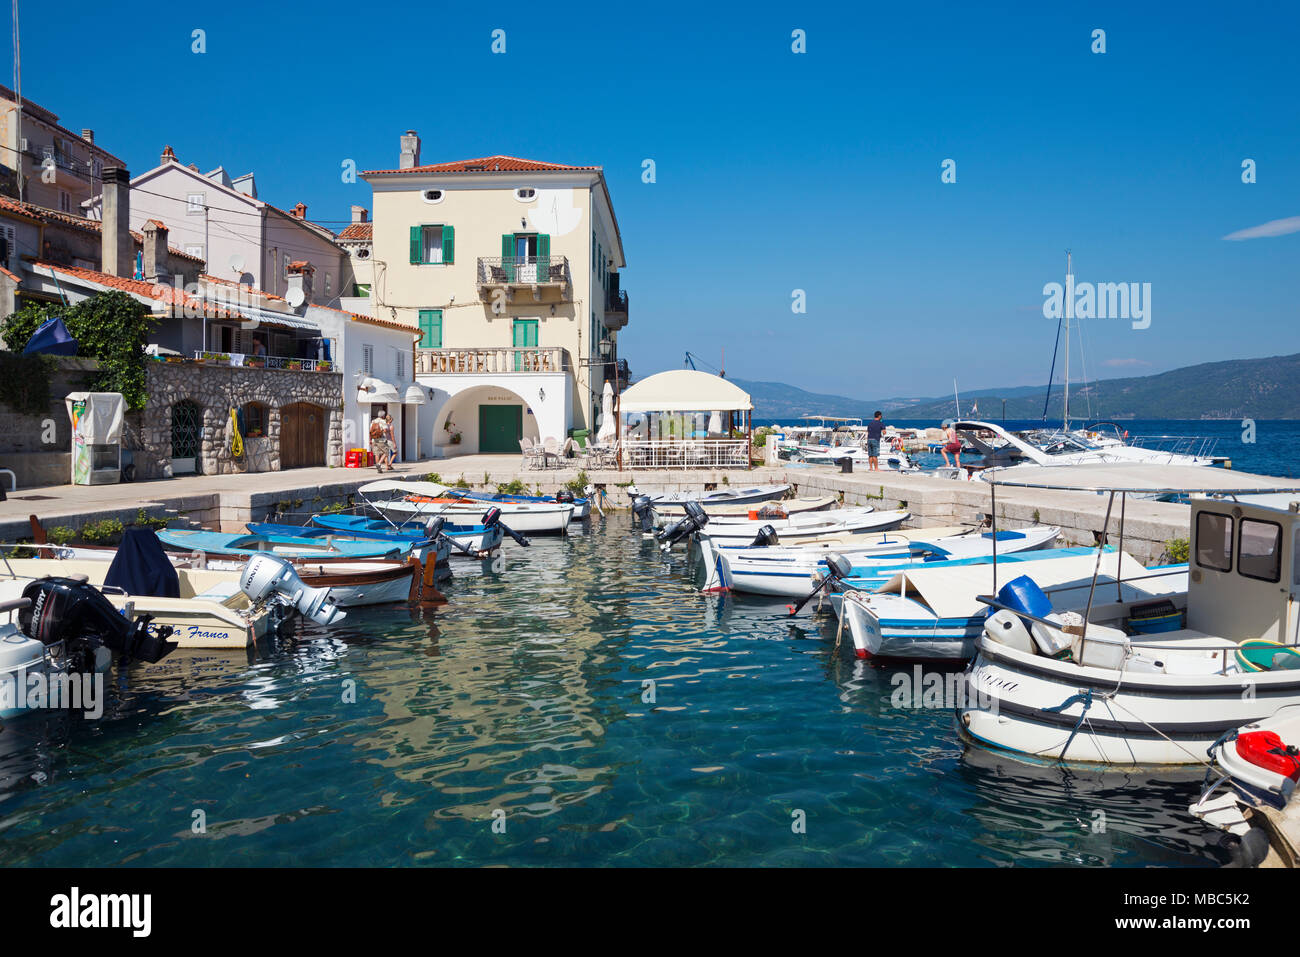 Port, Valun, Cres Island, Kvarner Gulf Bay, Croatia - Stock Image